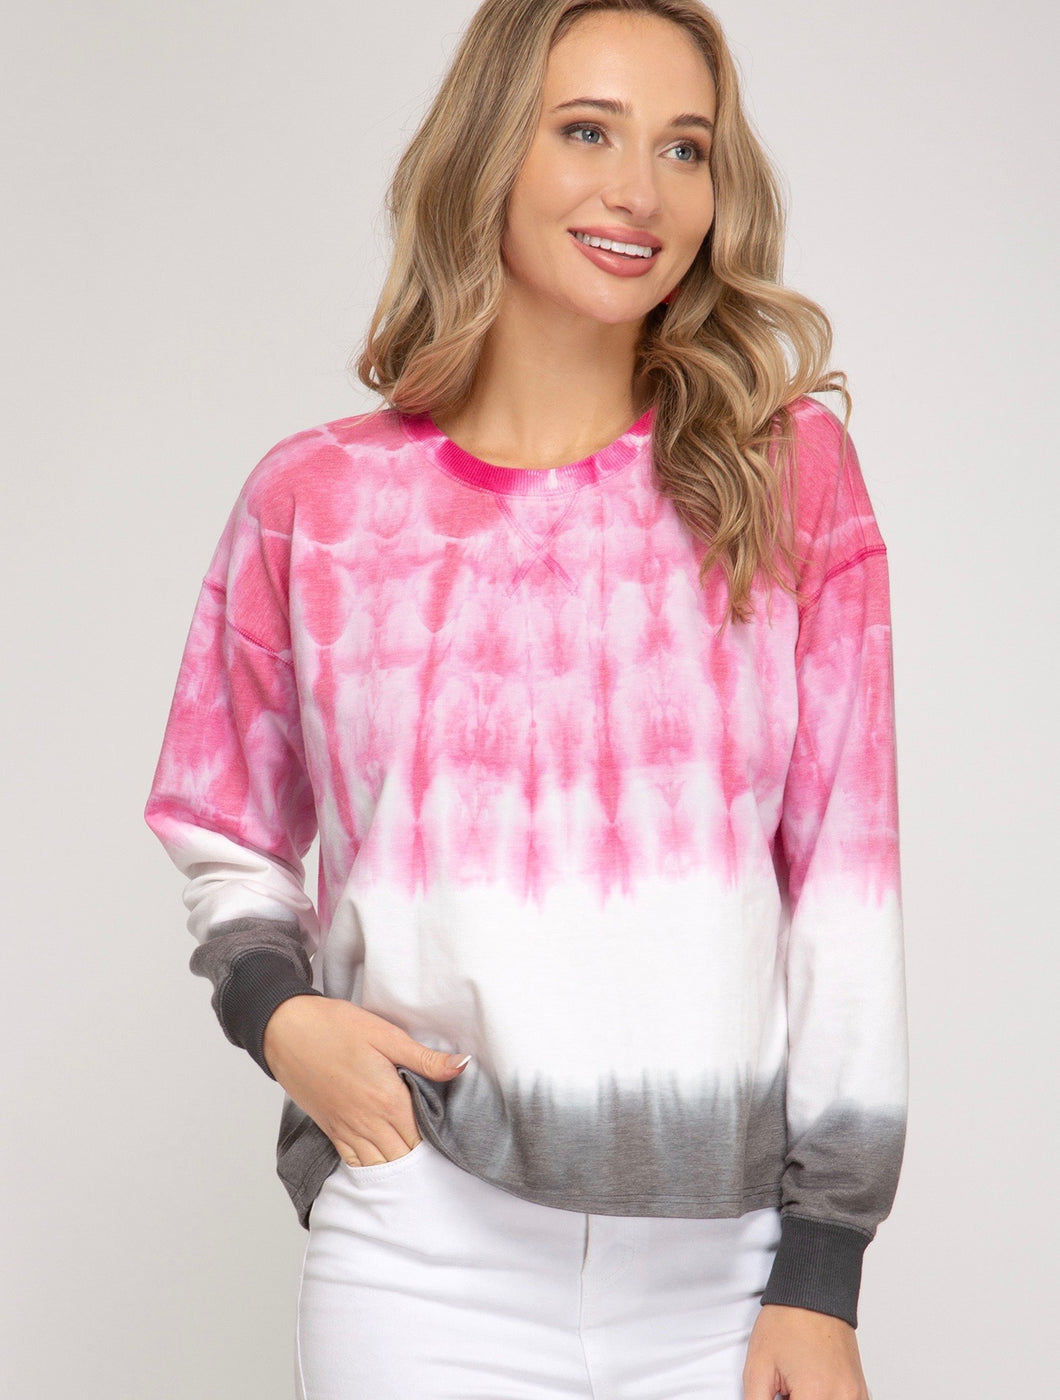 Pink and Grey Tie Dyed Top